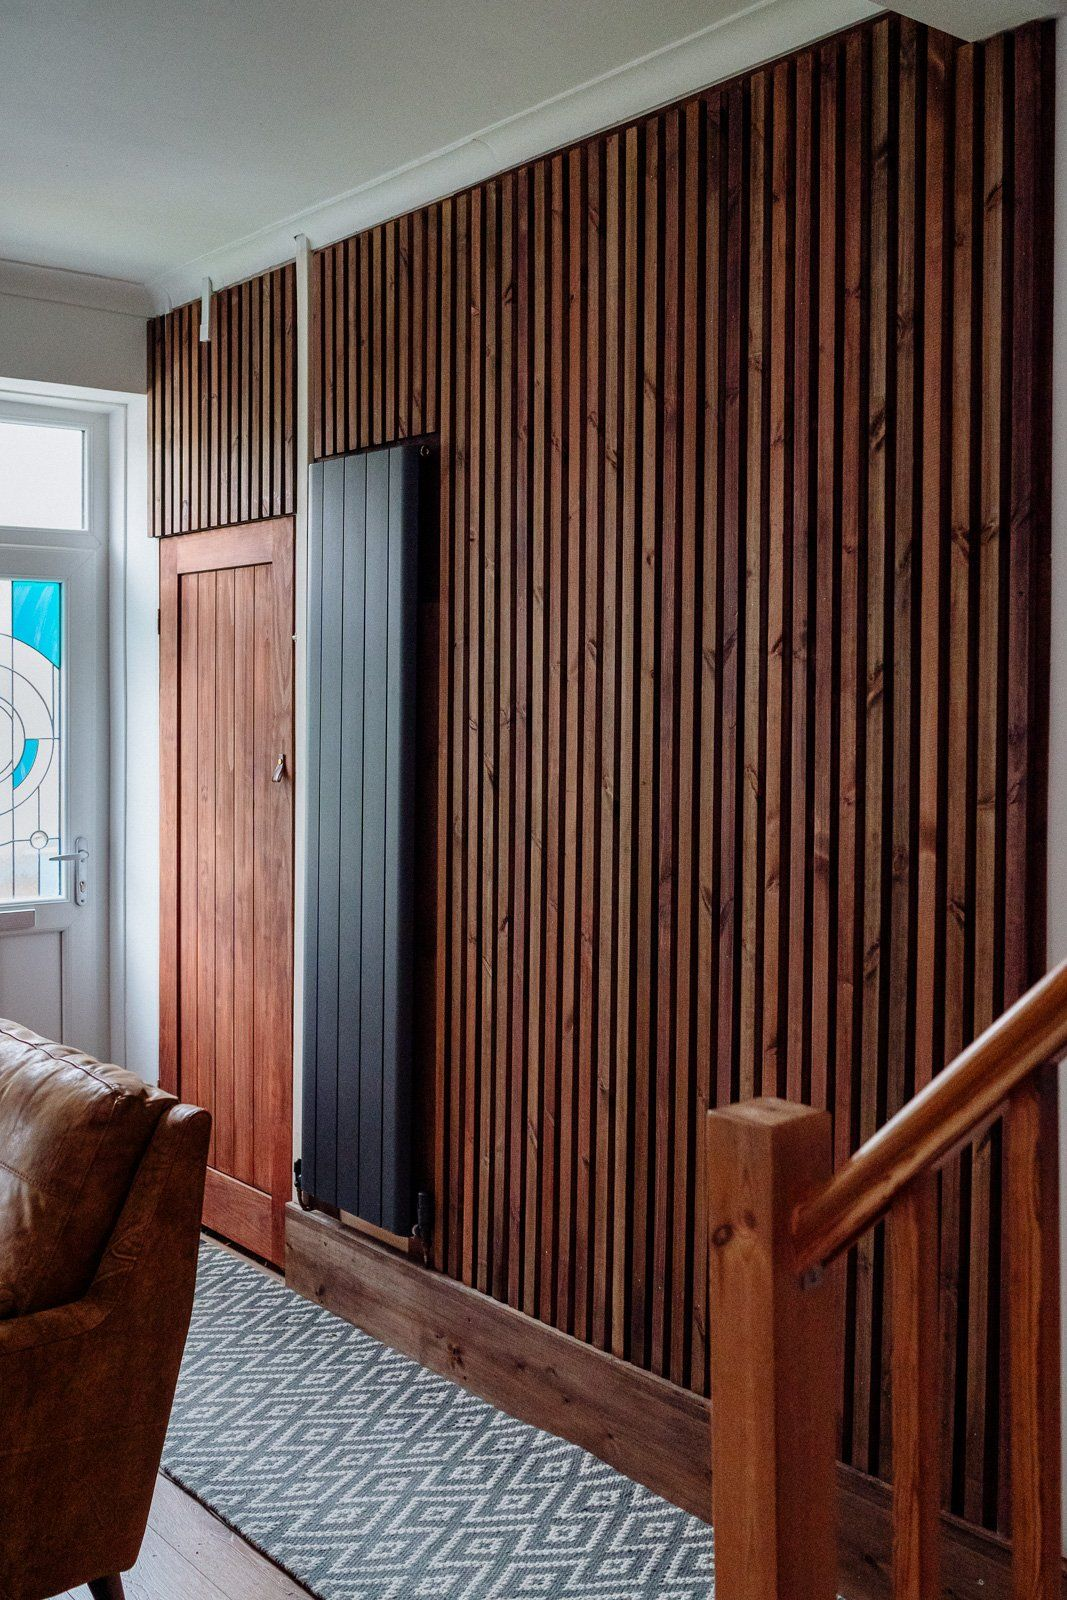 Building a DIY vertical wooden slat wall - Our Crafty Home ...